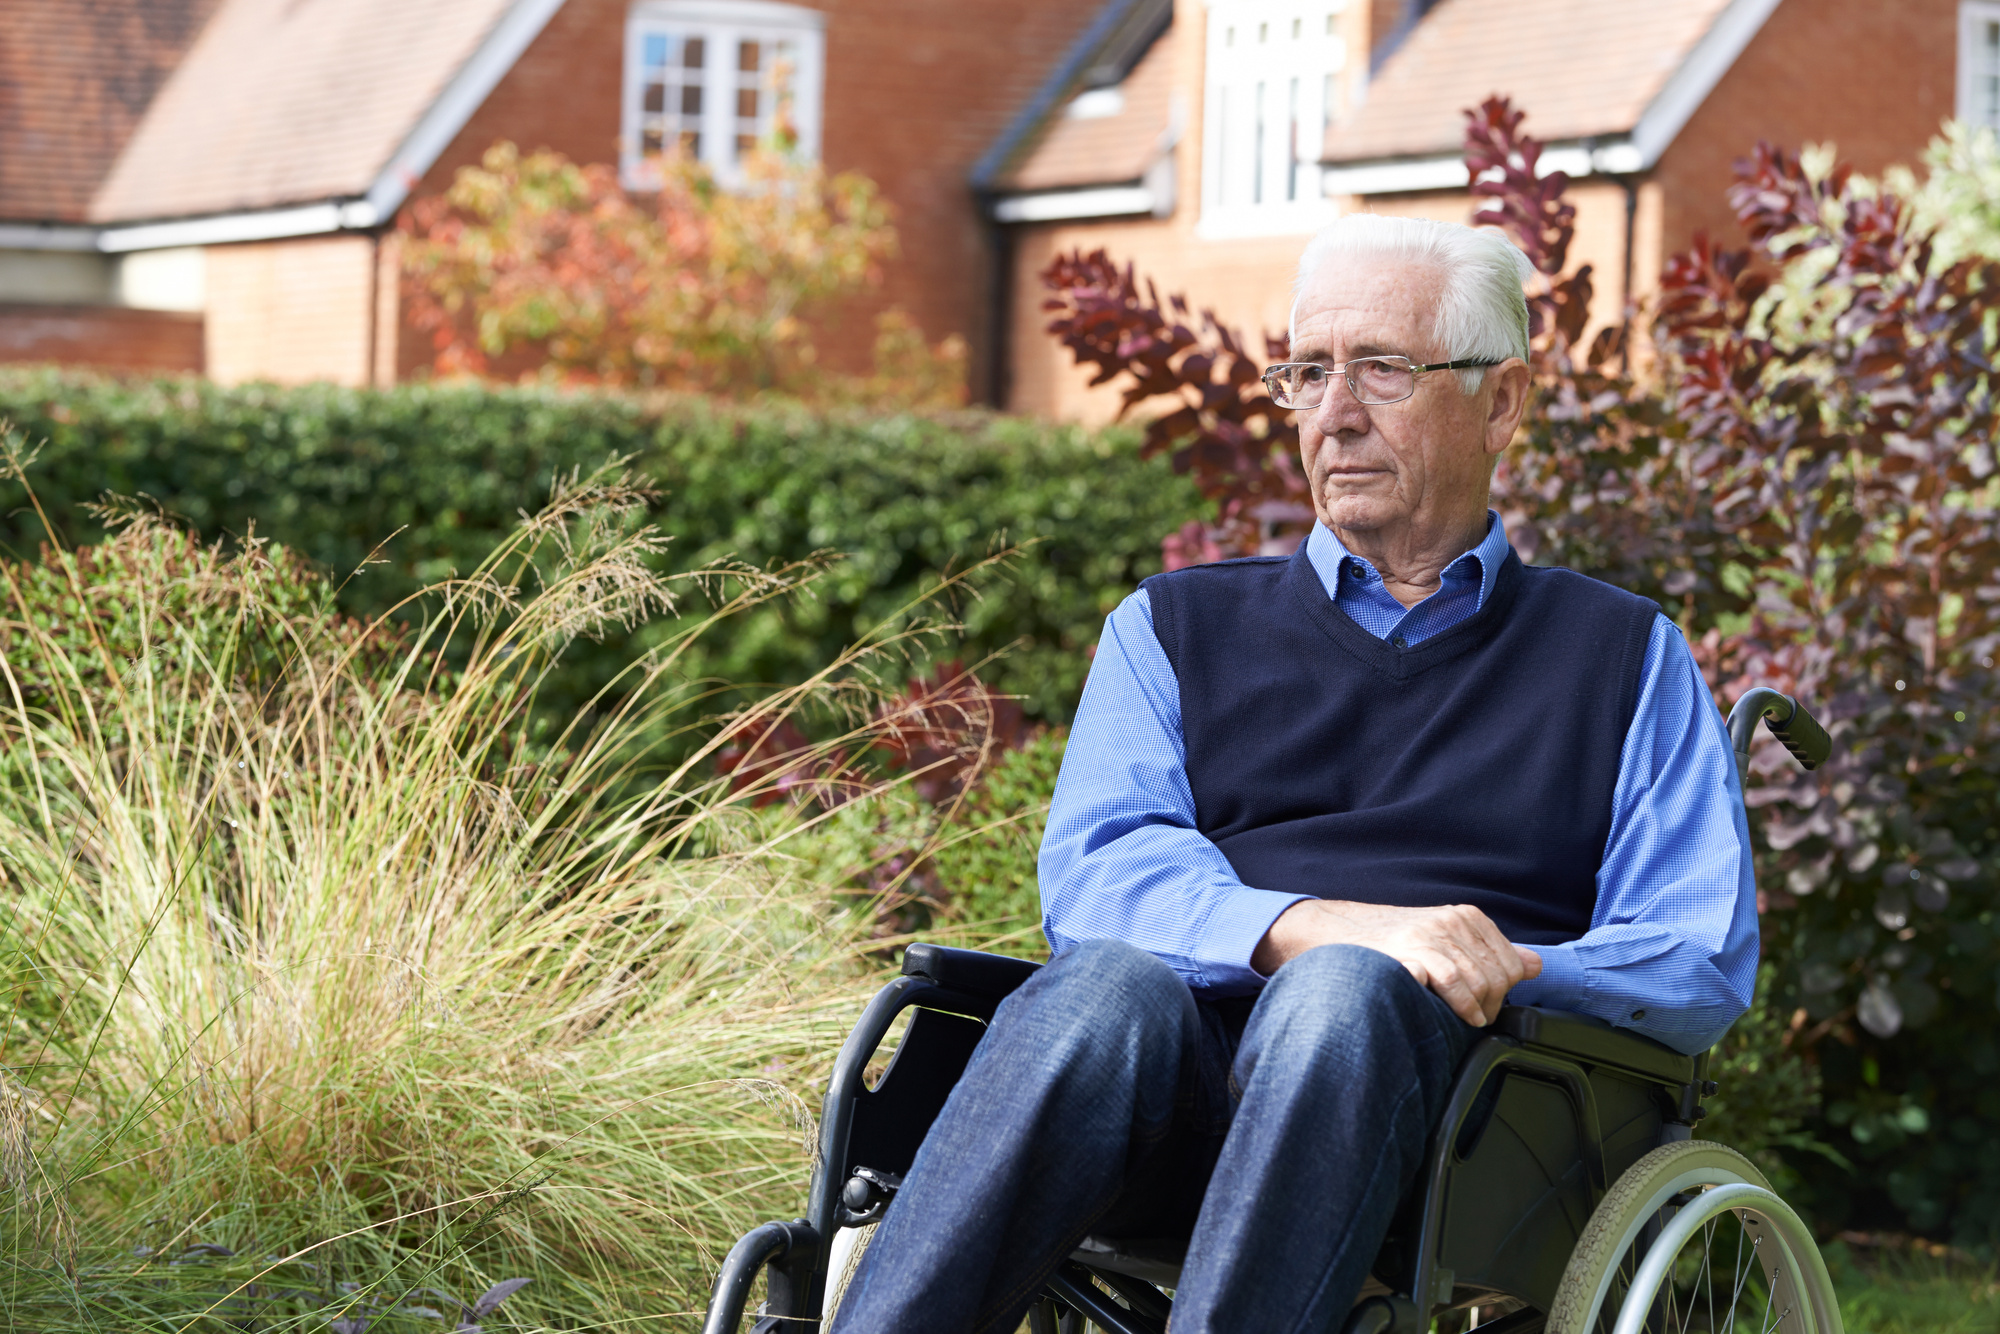 elderly man in wheelchair outside alone sad nursing home abuse